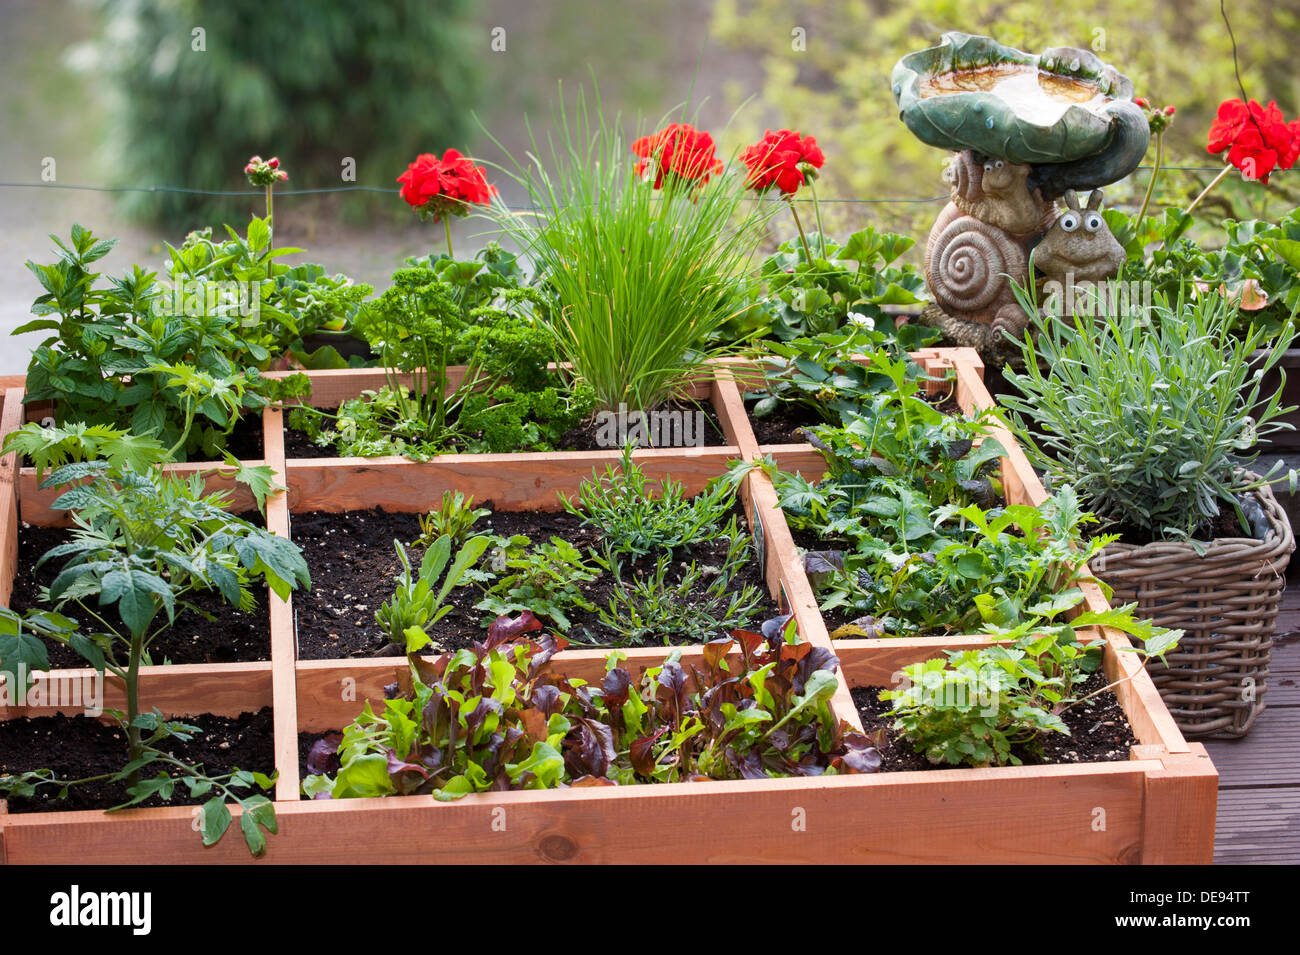 Square Foot Gardening By Planting Flowers Herbs And Vegetables In Stock Photo 60437688 Alamy